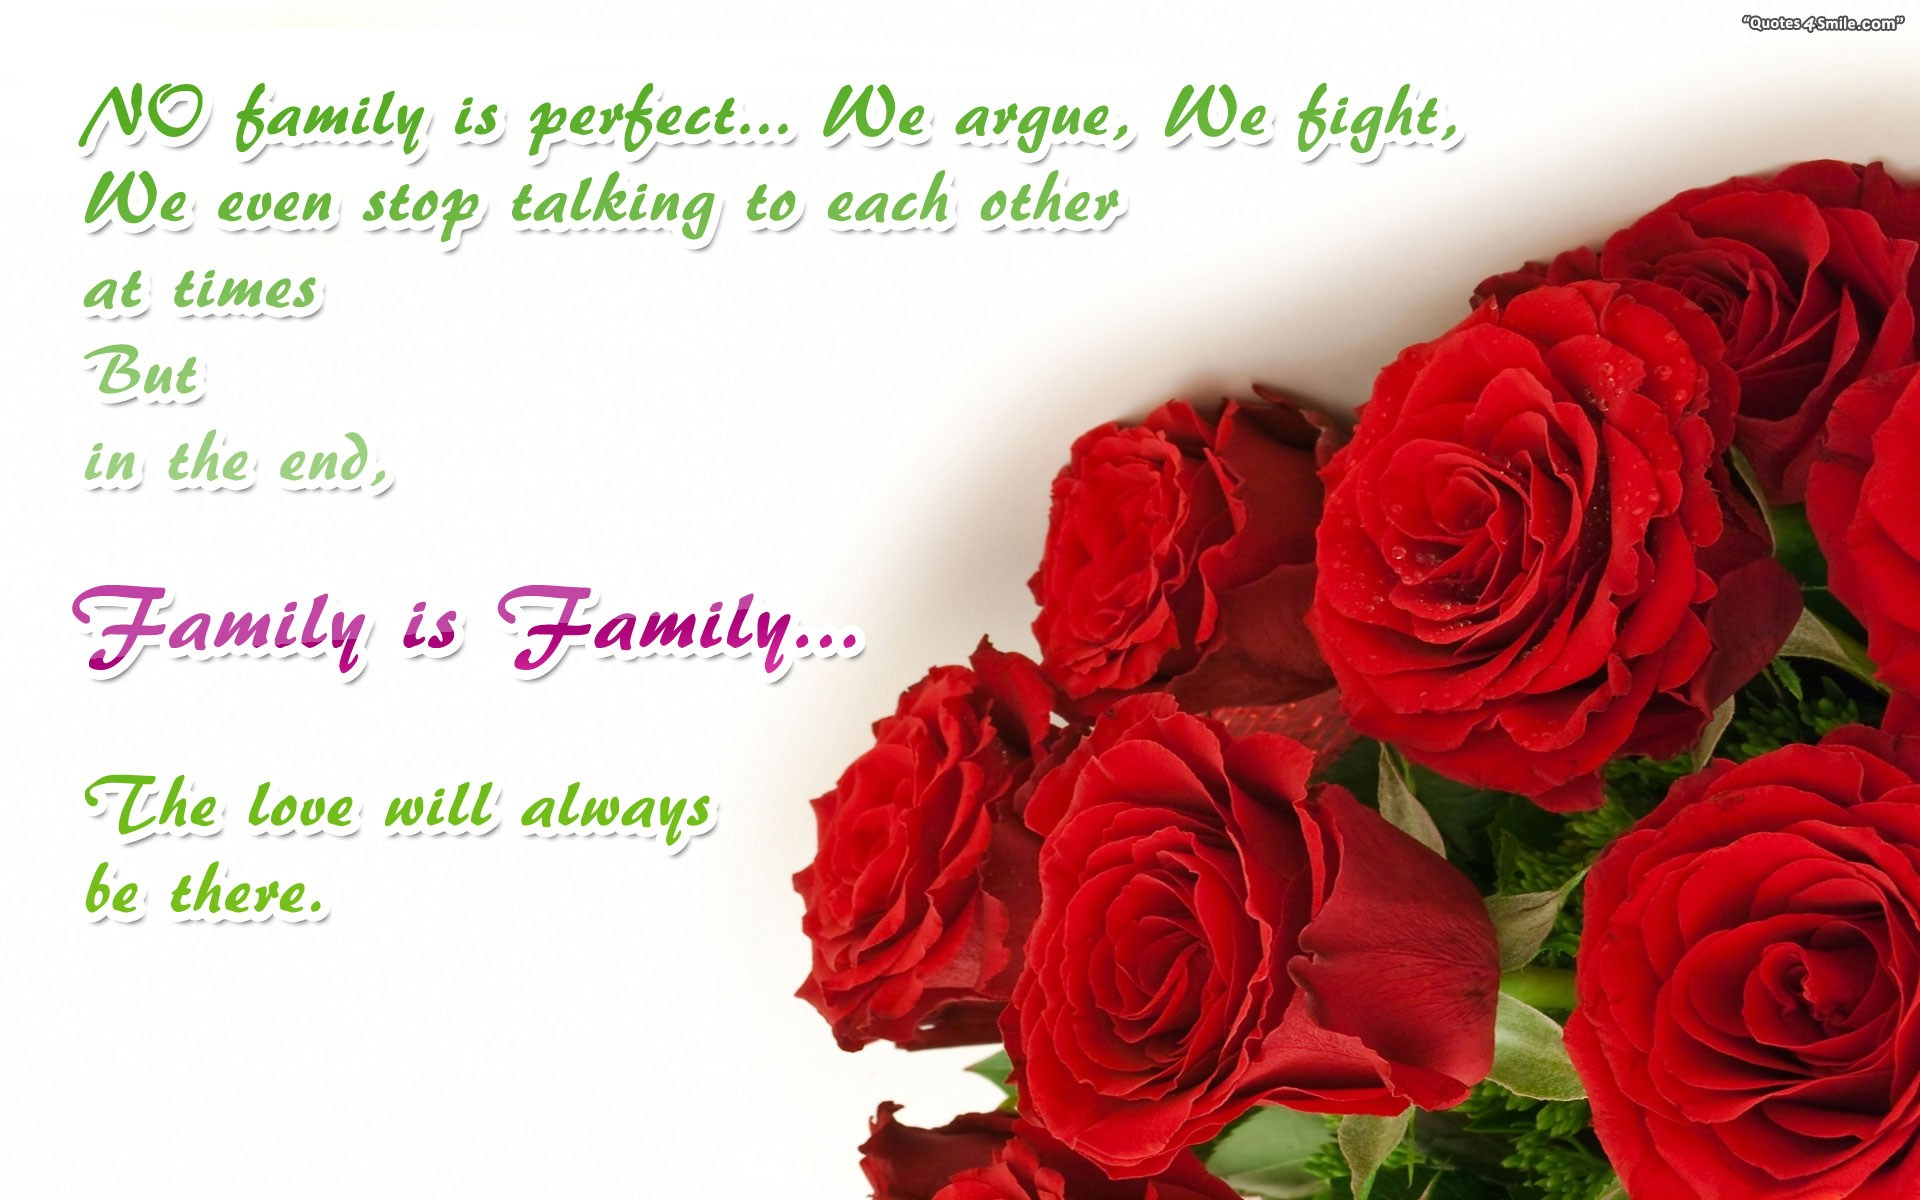 Unloyal Family Quotes And Sayings: Family Reunion Quotes And Sayings. QuotesGram